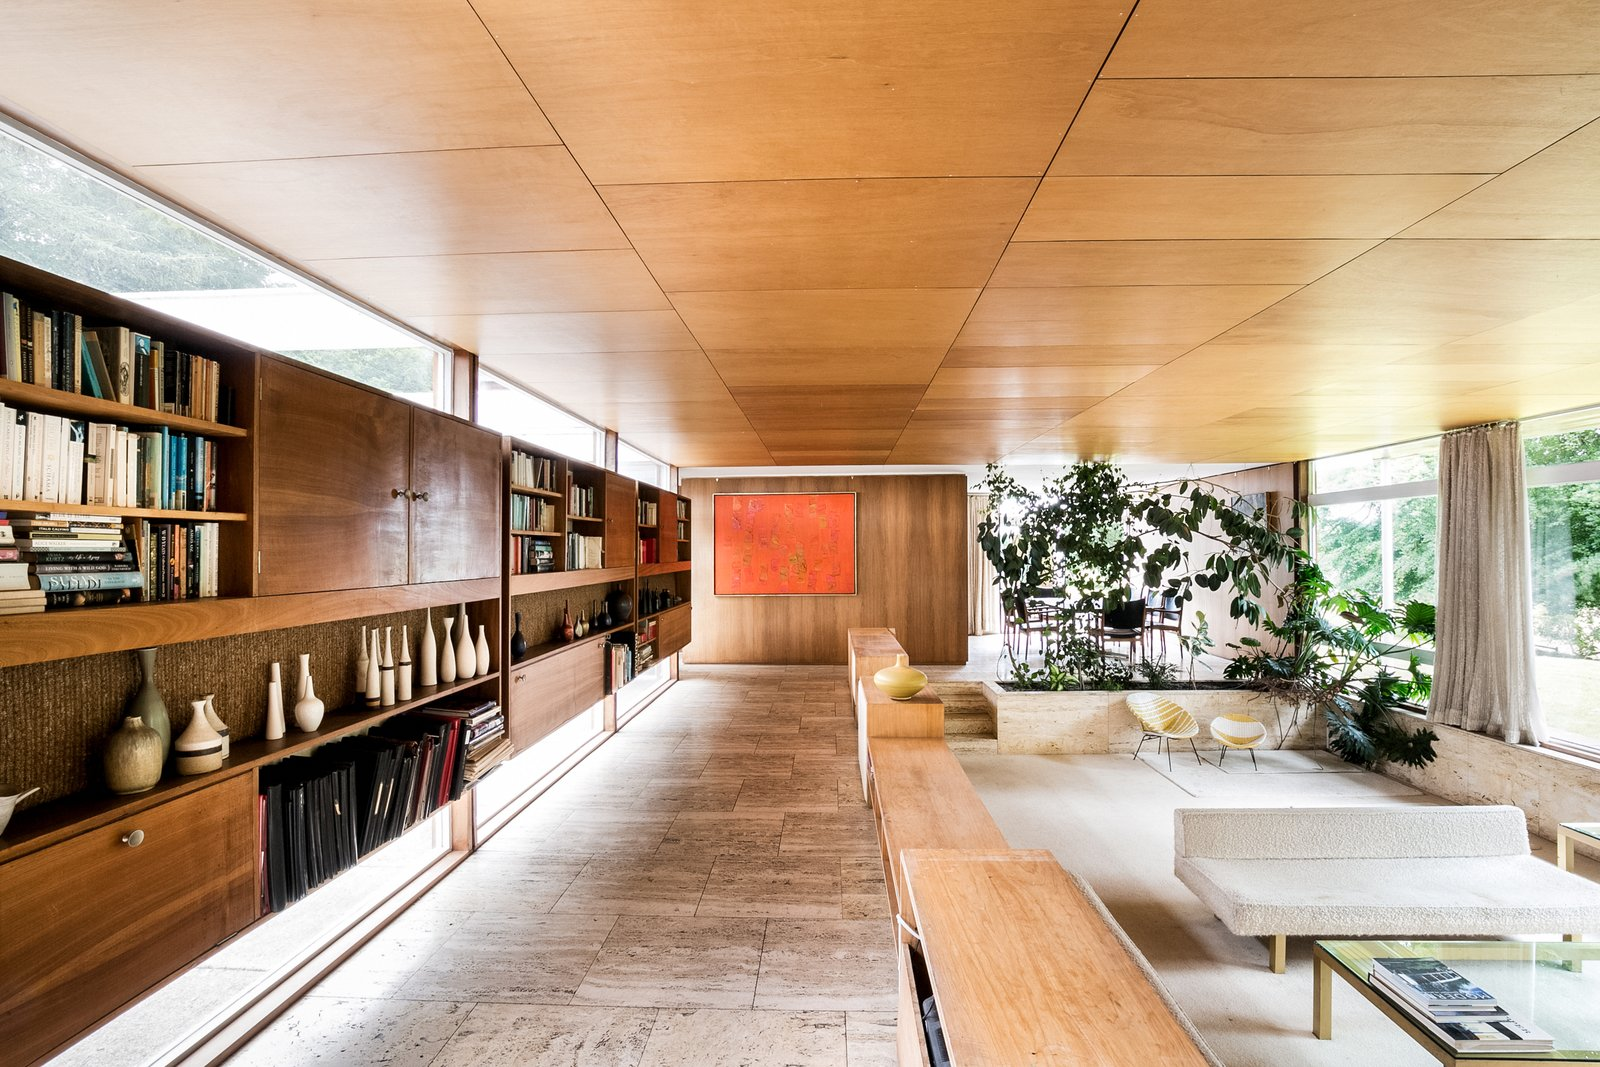 Living Room, Sofa, Chair, Coffee Tables, Storage, Shelves, and Travertine Floor  Photo 4 of 11 in The Iconic, Midcentury Home That Peter Womersley Designed For Bernat Klein Asks $1.02M